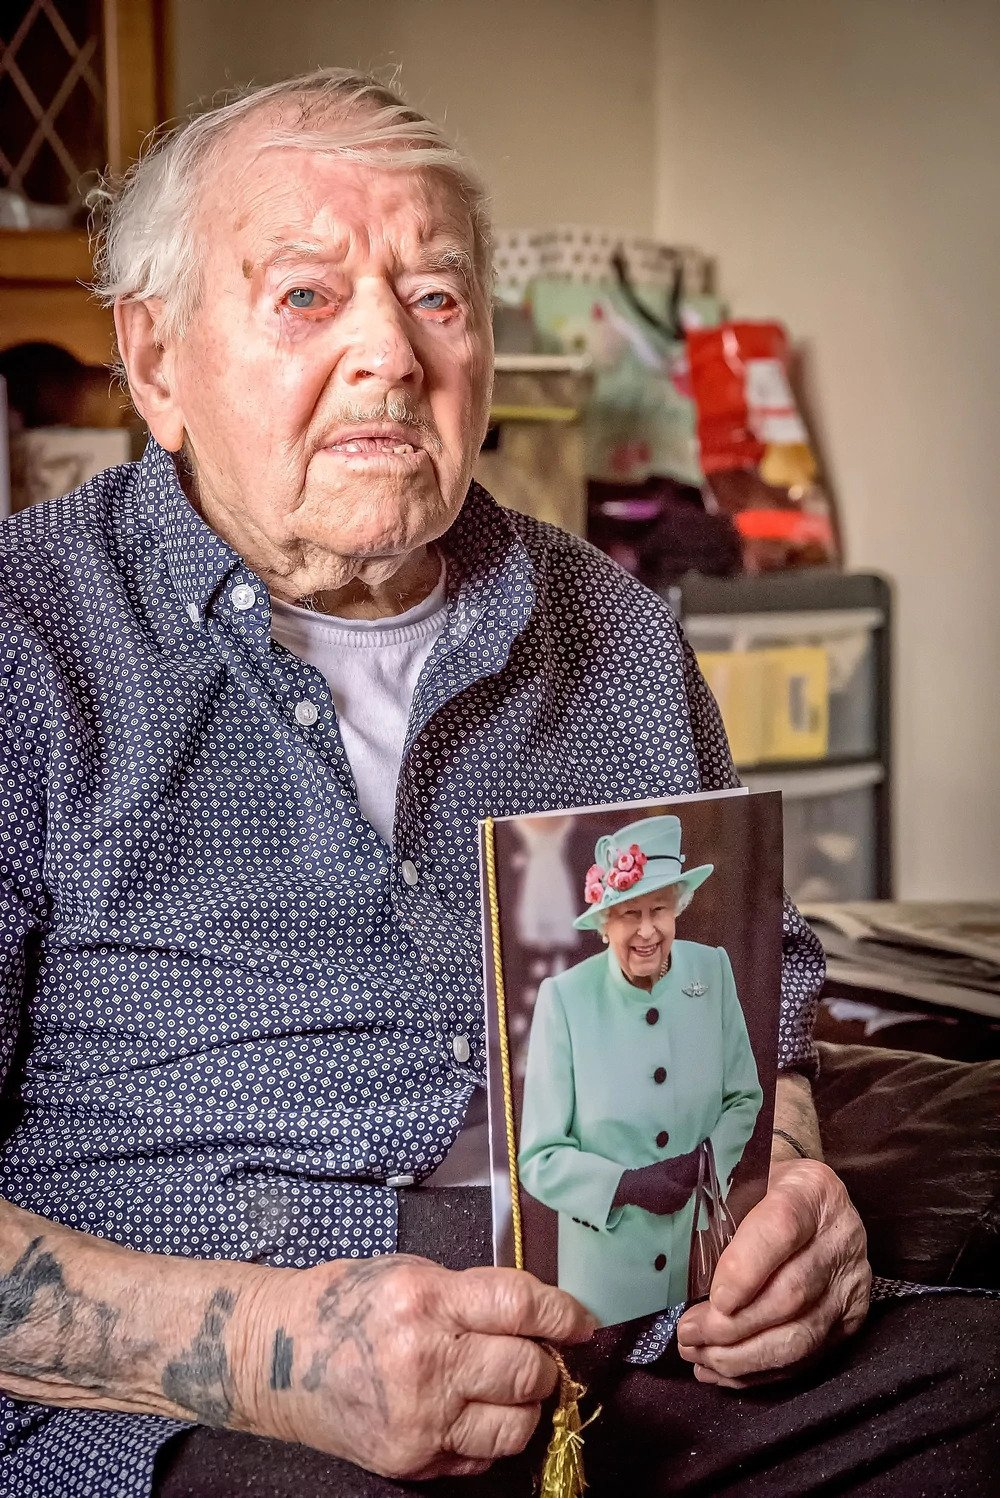 Second World War veteran Fred Holding celebrated his 100th birthday with a card from the Queen